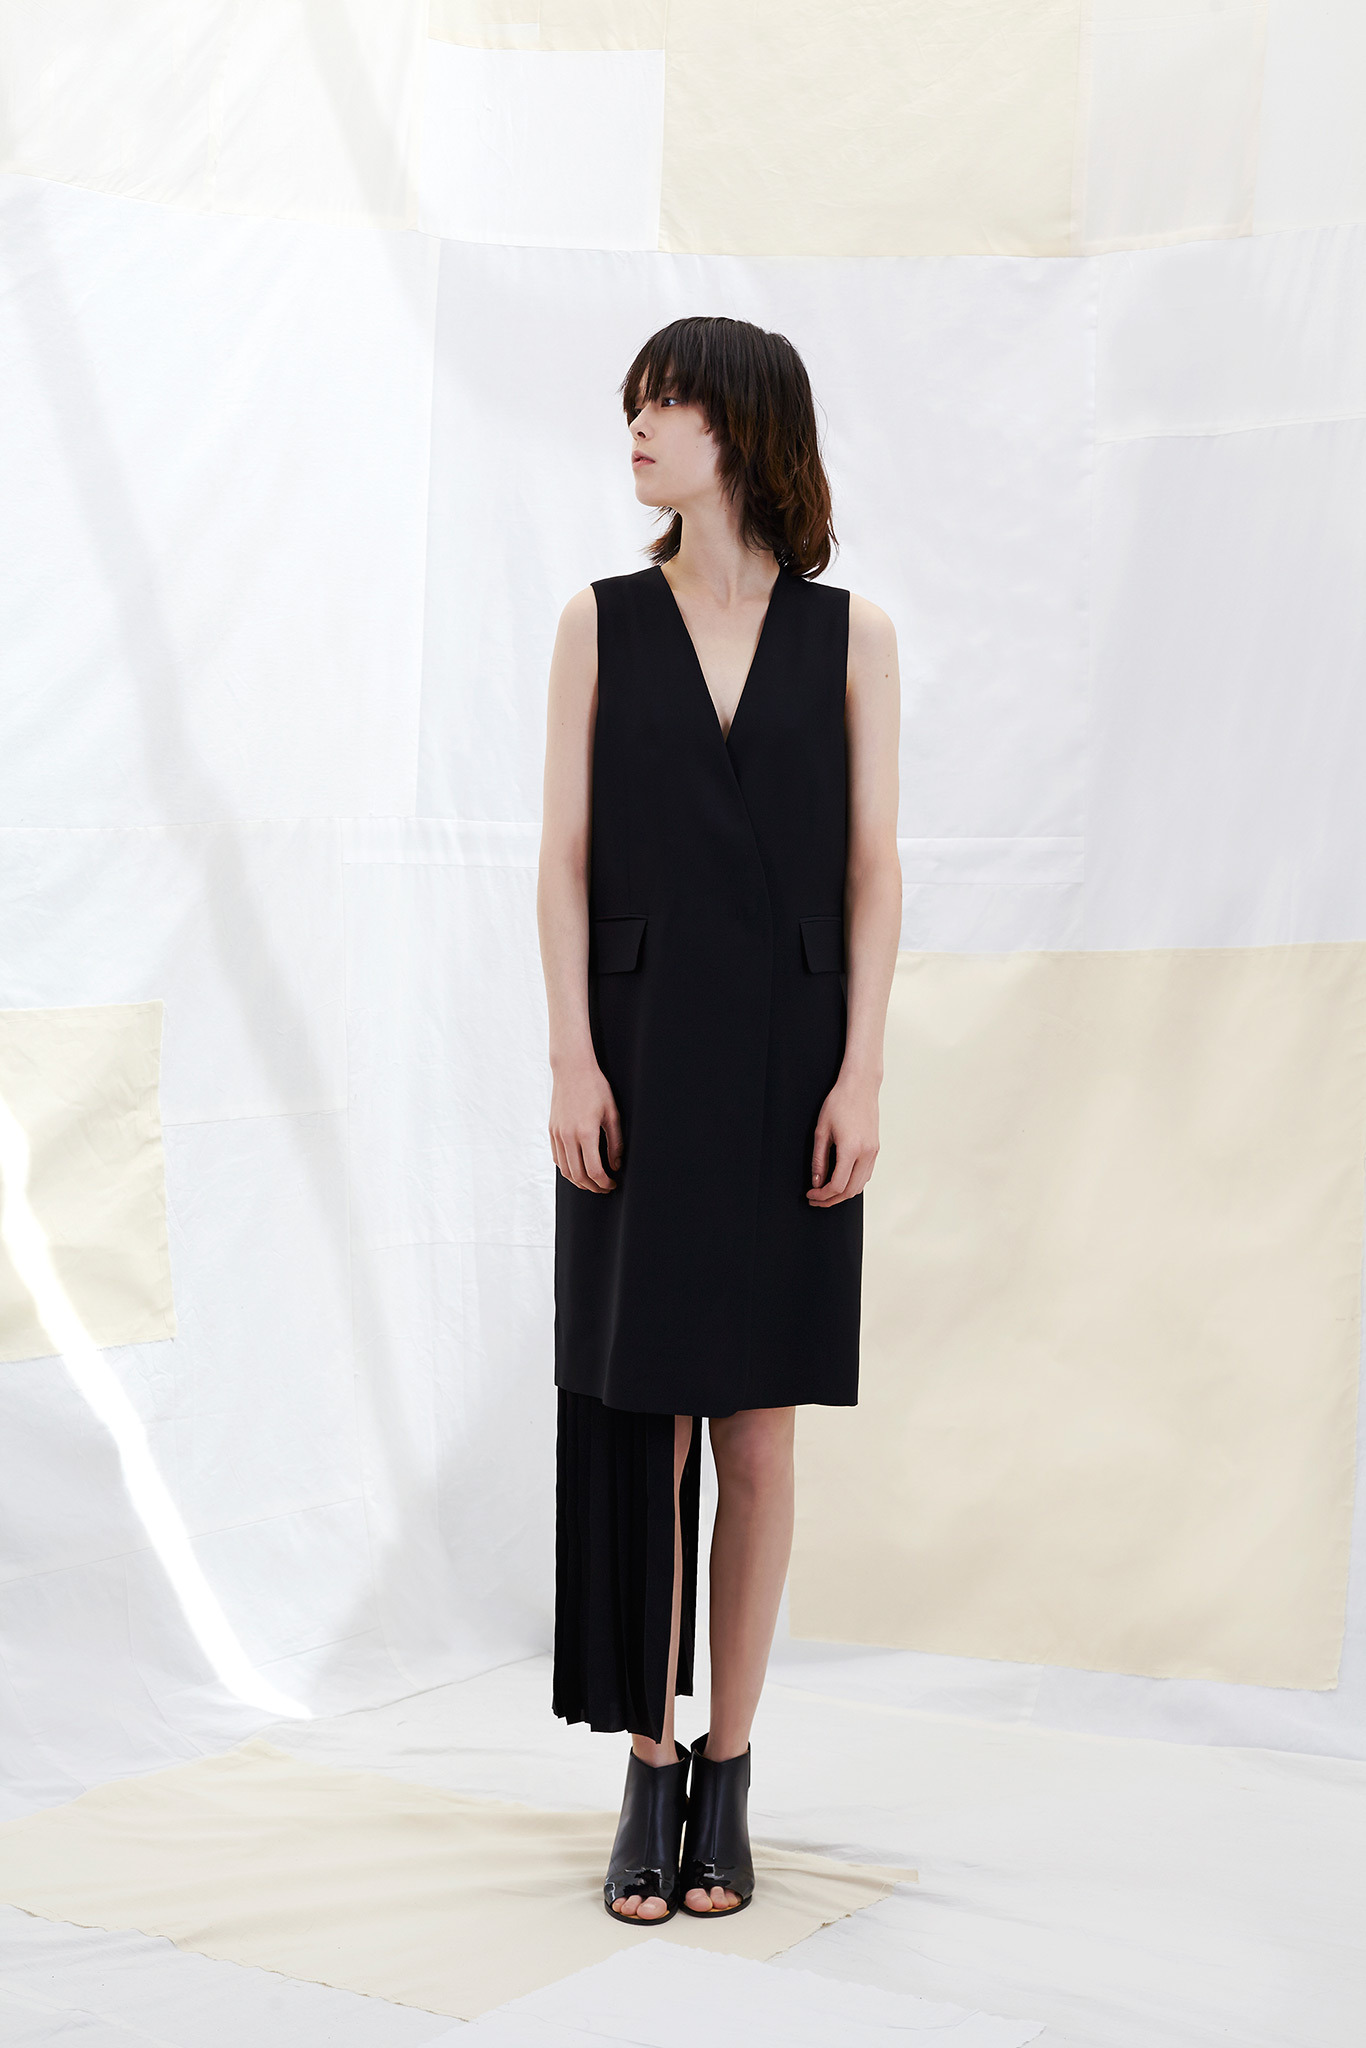 Mm6 maison margiela resort 2015 for Mm6 maison margiela